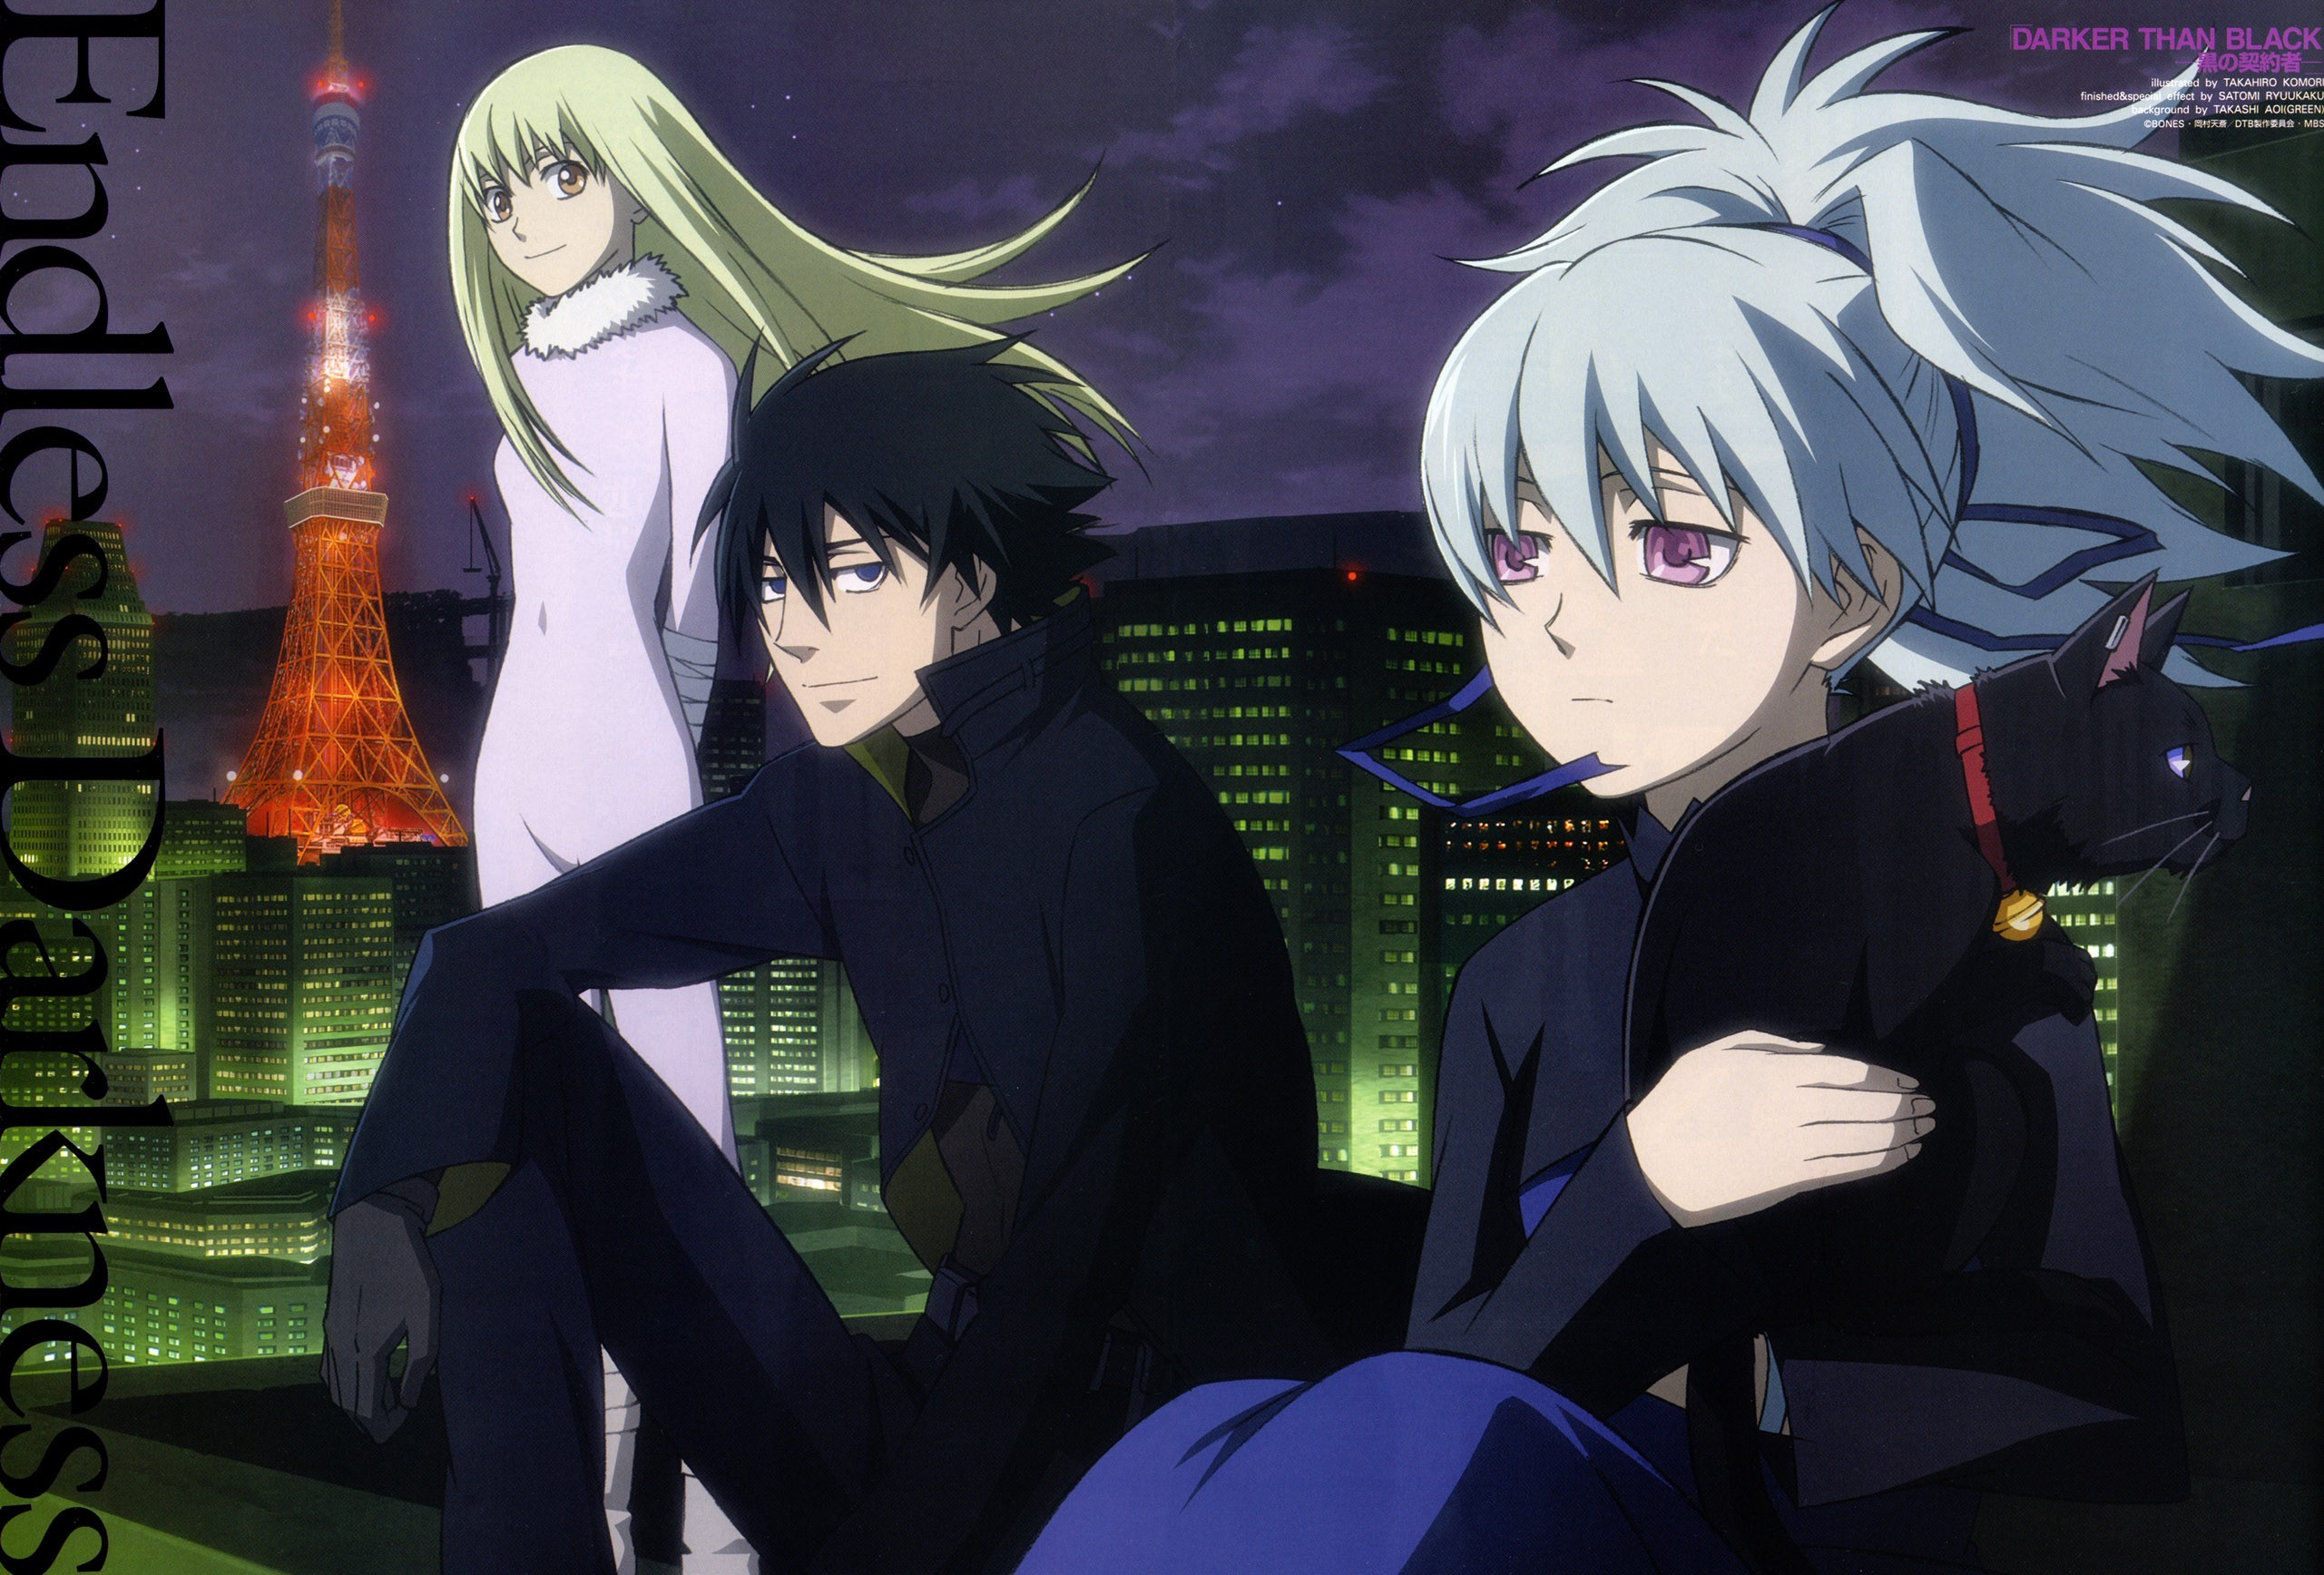 2561x1736  HD Wallpaper | Background ID:217009.  Anime Darker Than  Black. 2 Like